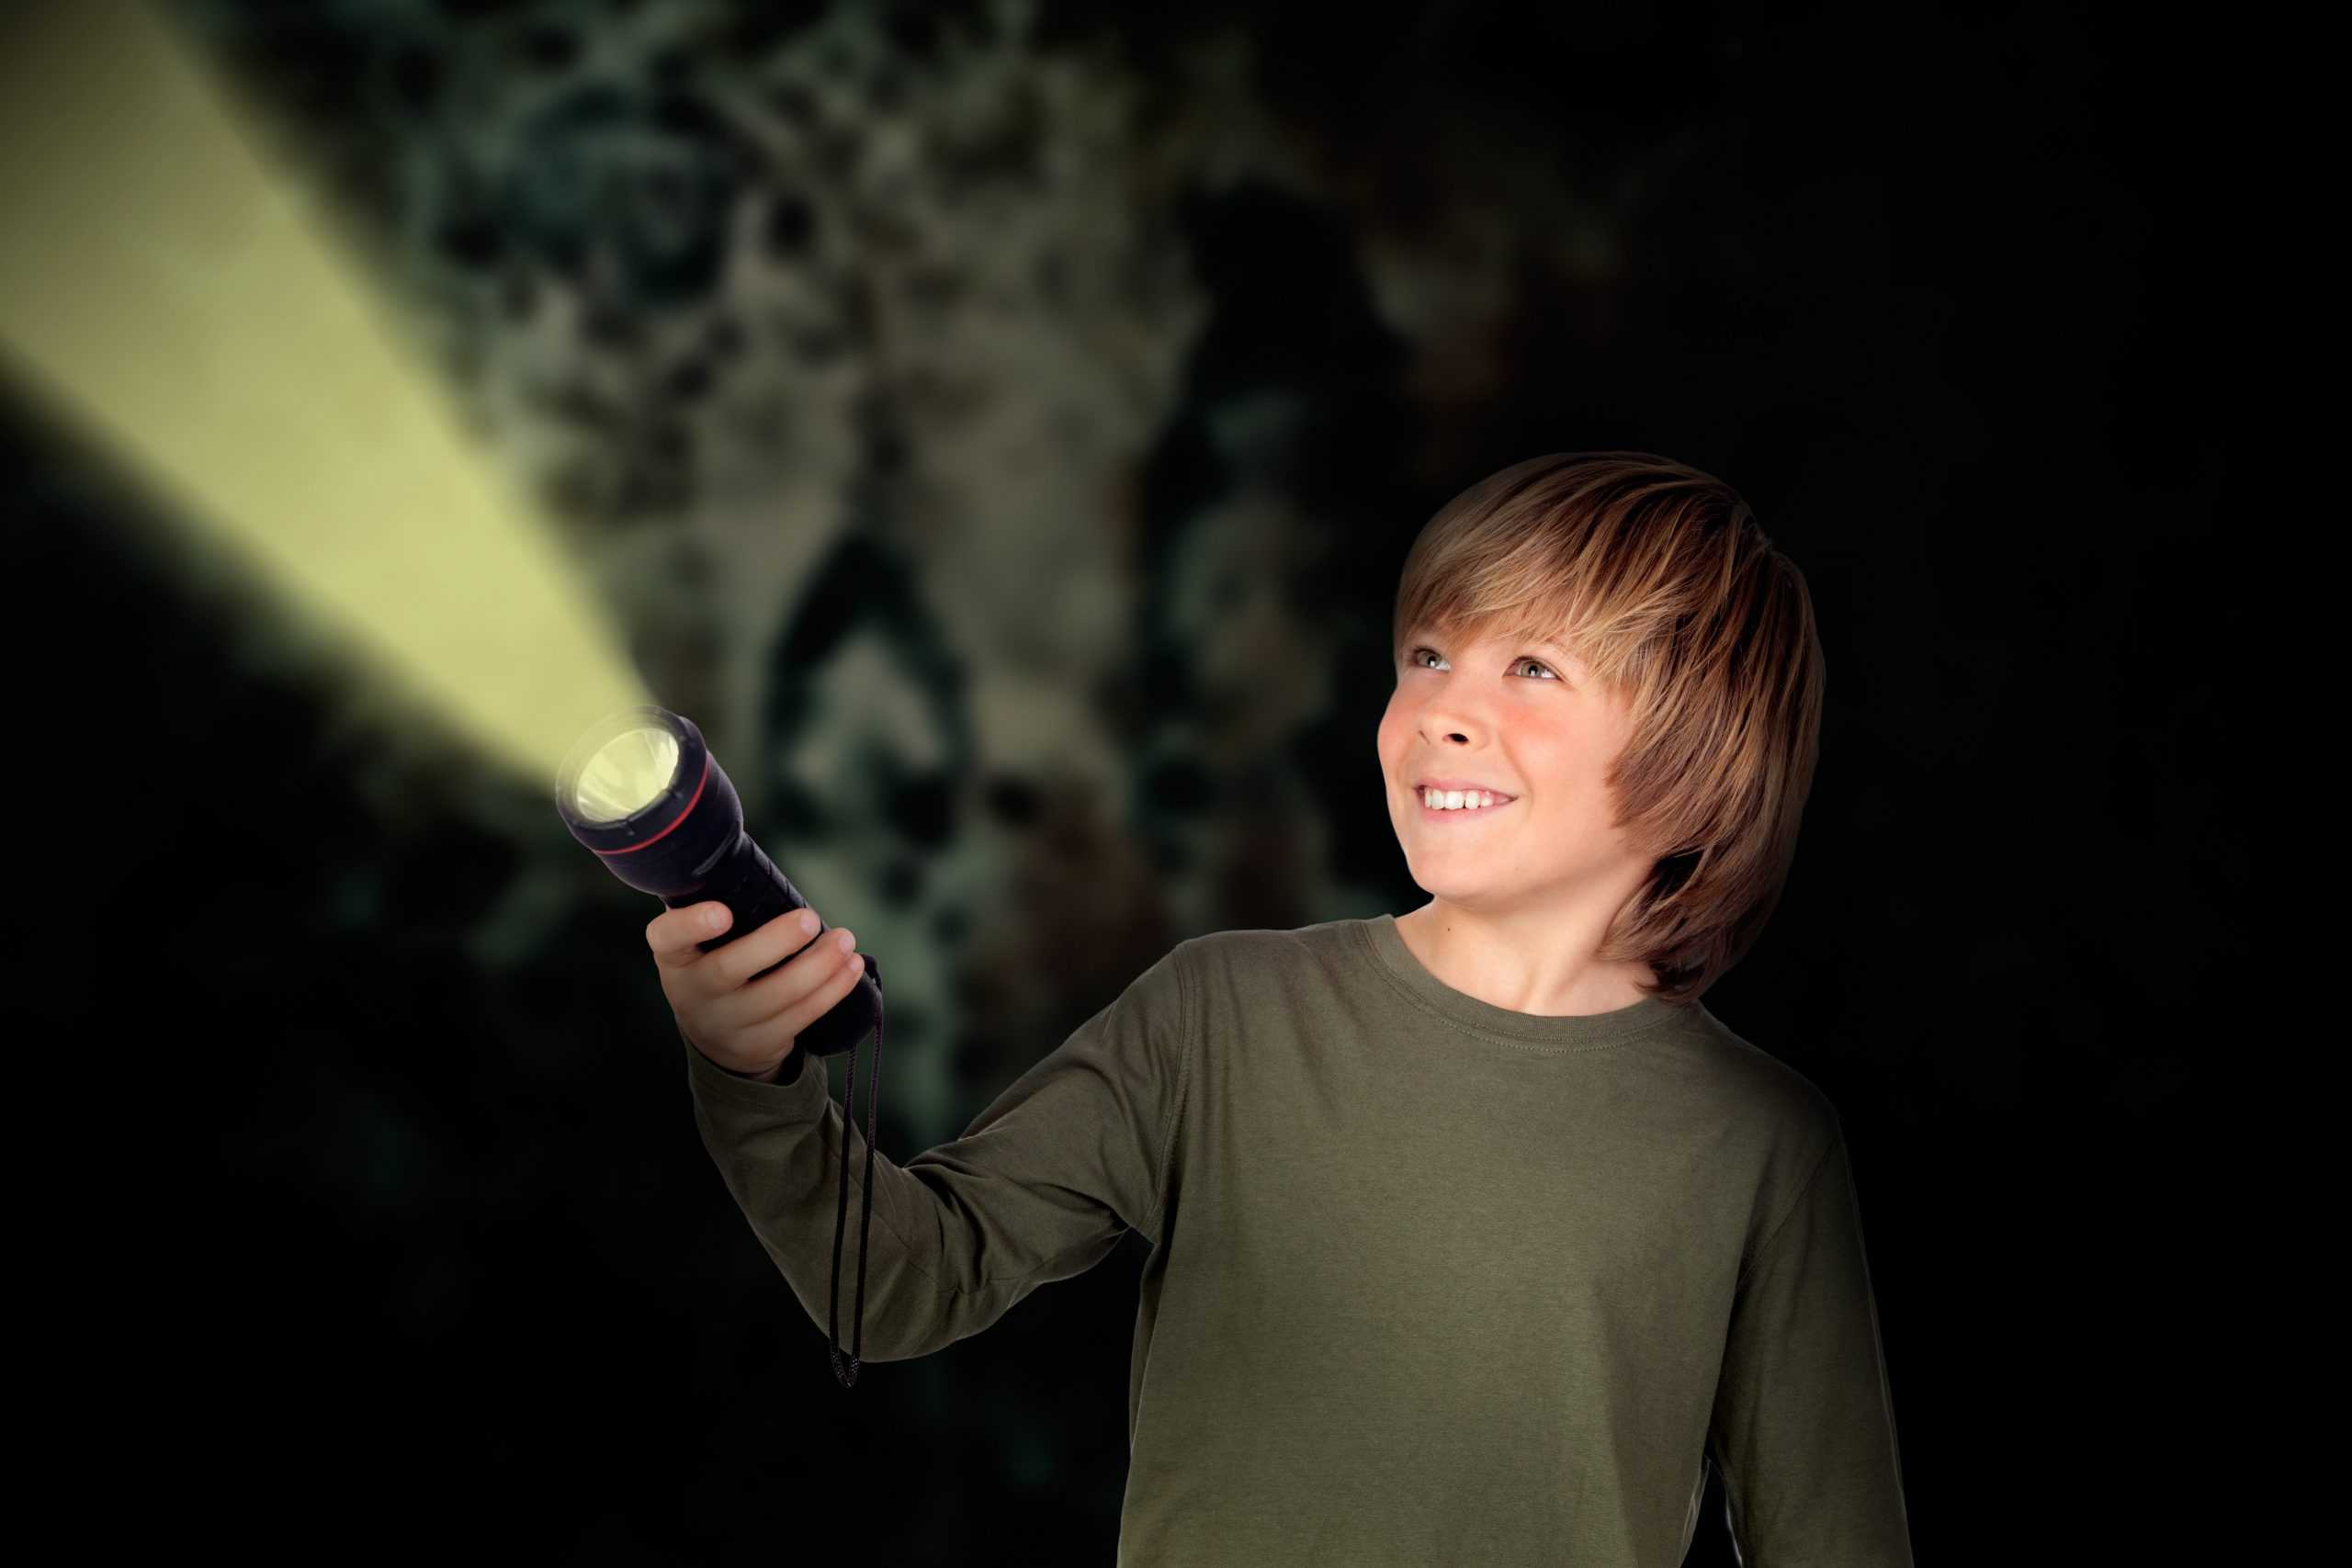 Child with a flashlight looking for something on darkness background